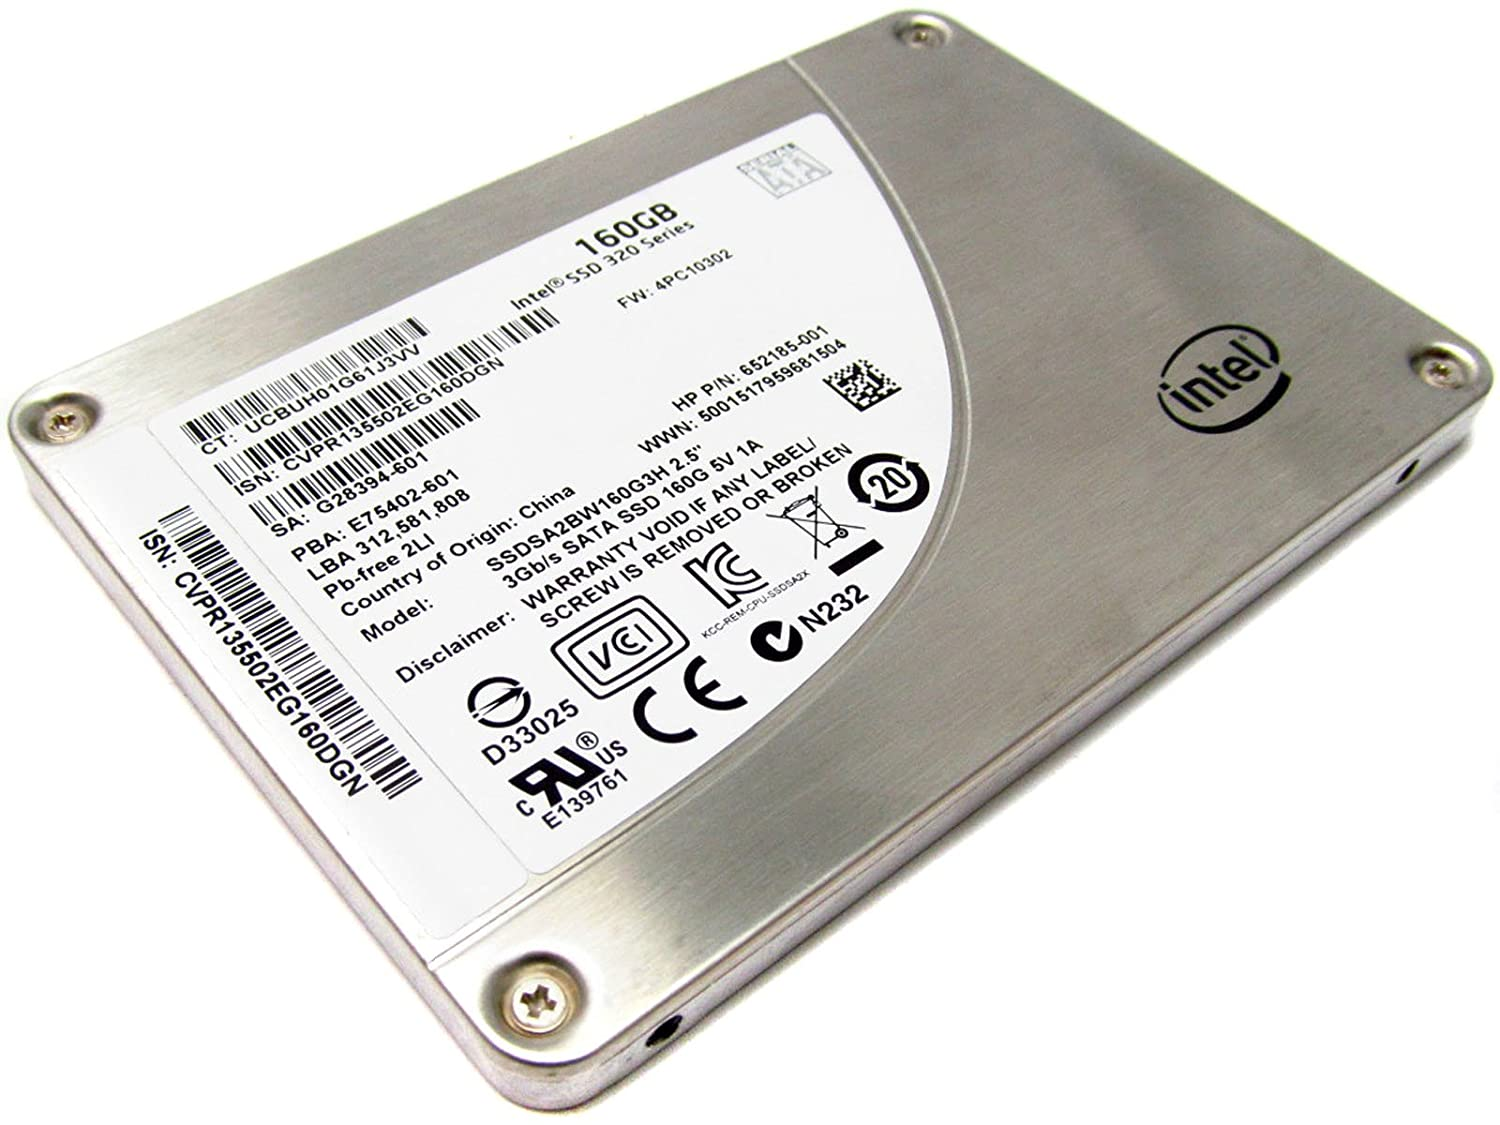 Intel SSD 320 Series 160GB - SSDSA2BW160G3H